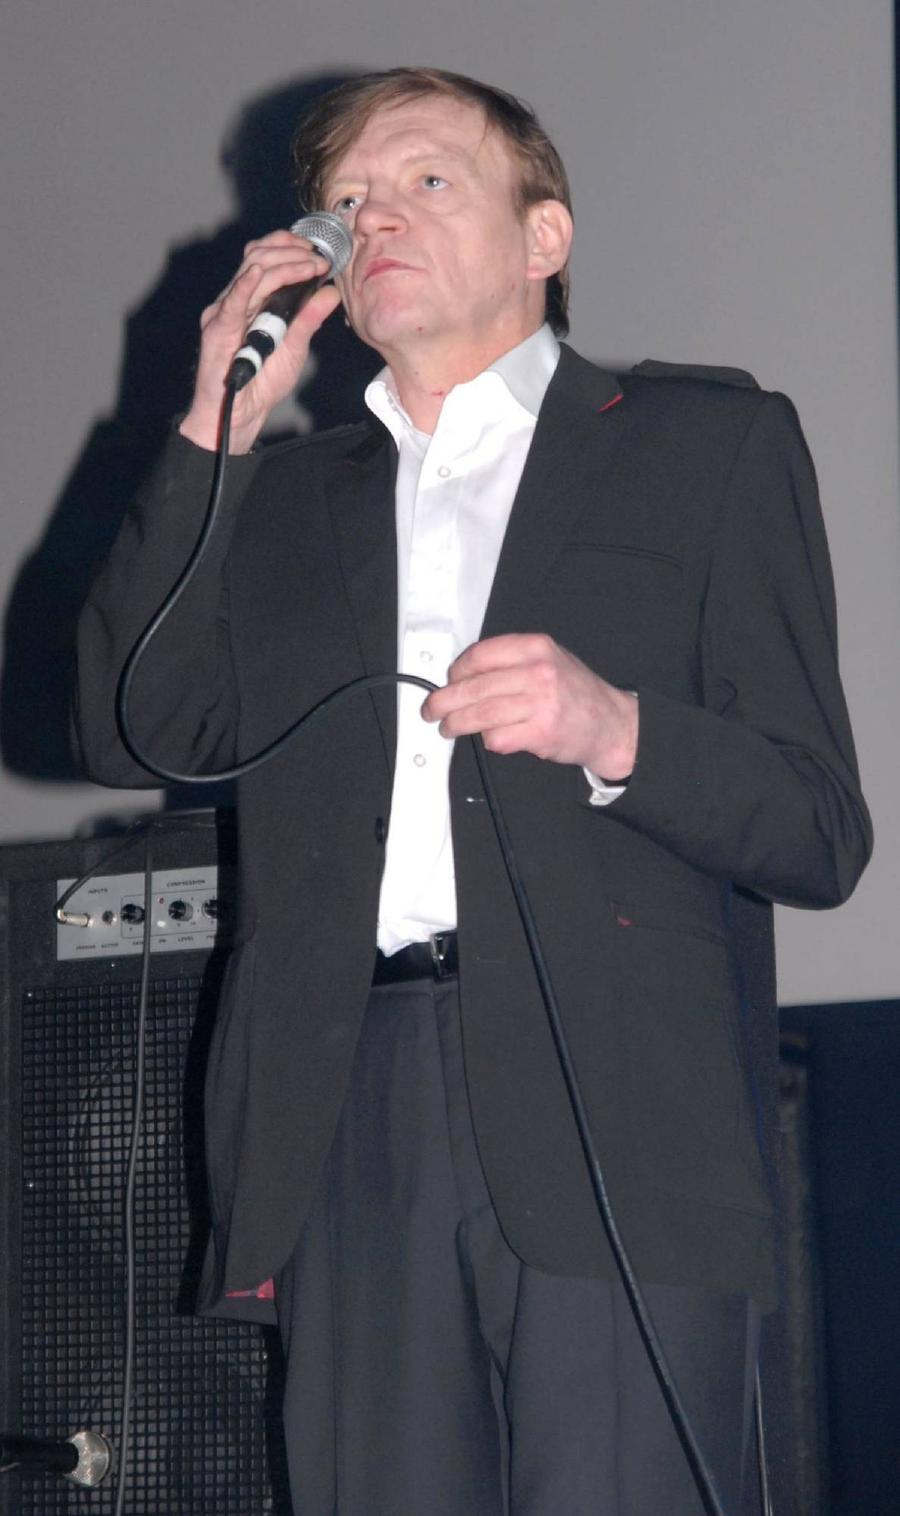 Bbc Bosses Apologise For Wrongly Announcing Mark E. Smith's Death